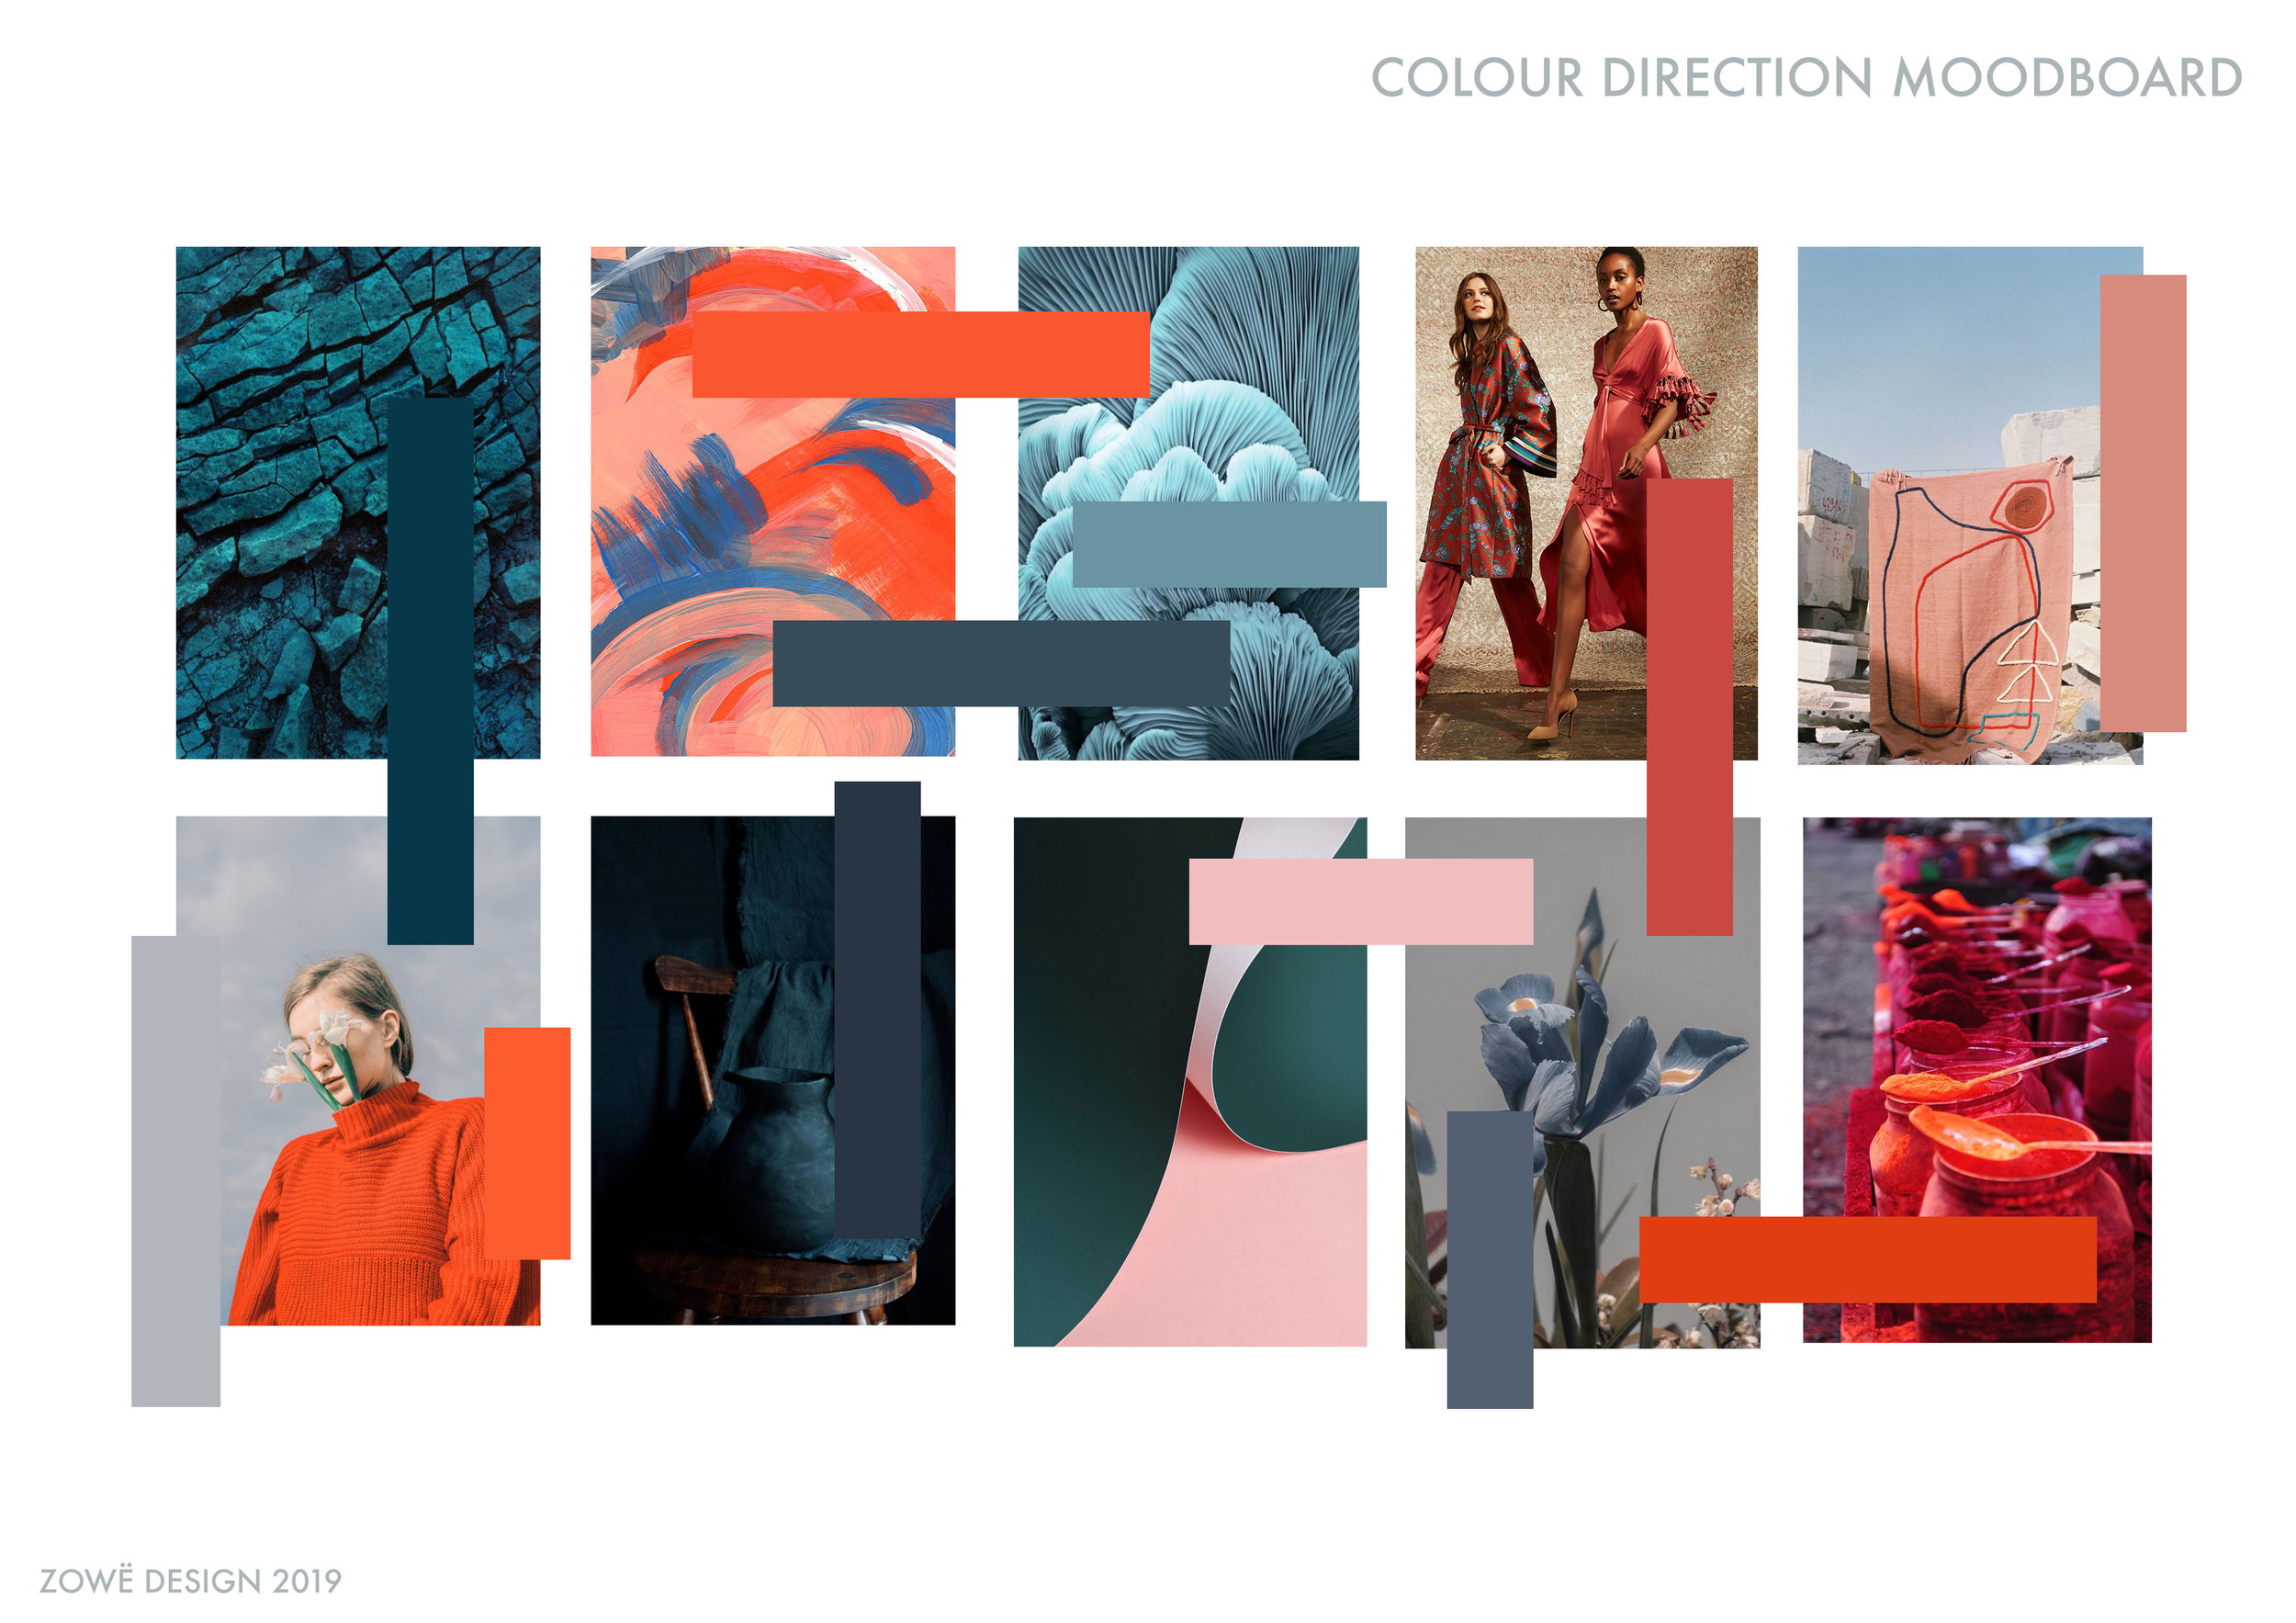 Colour Direction   * Images not my own and sourced from trend & design blogs